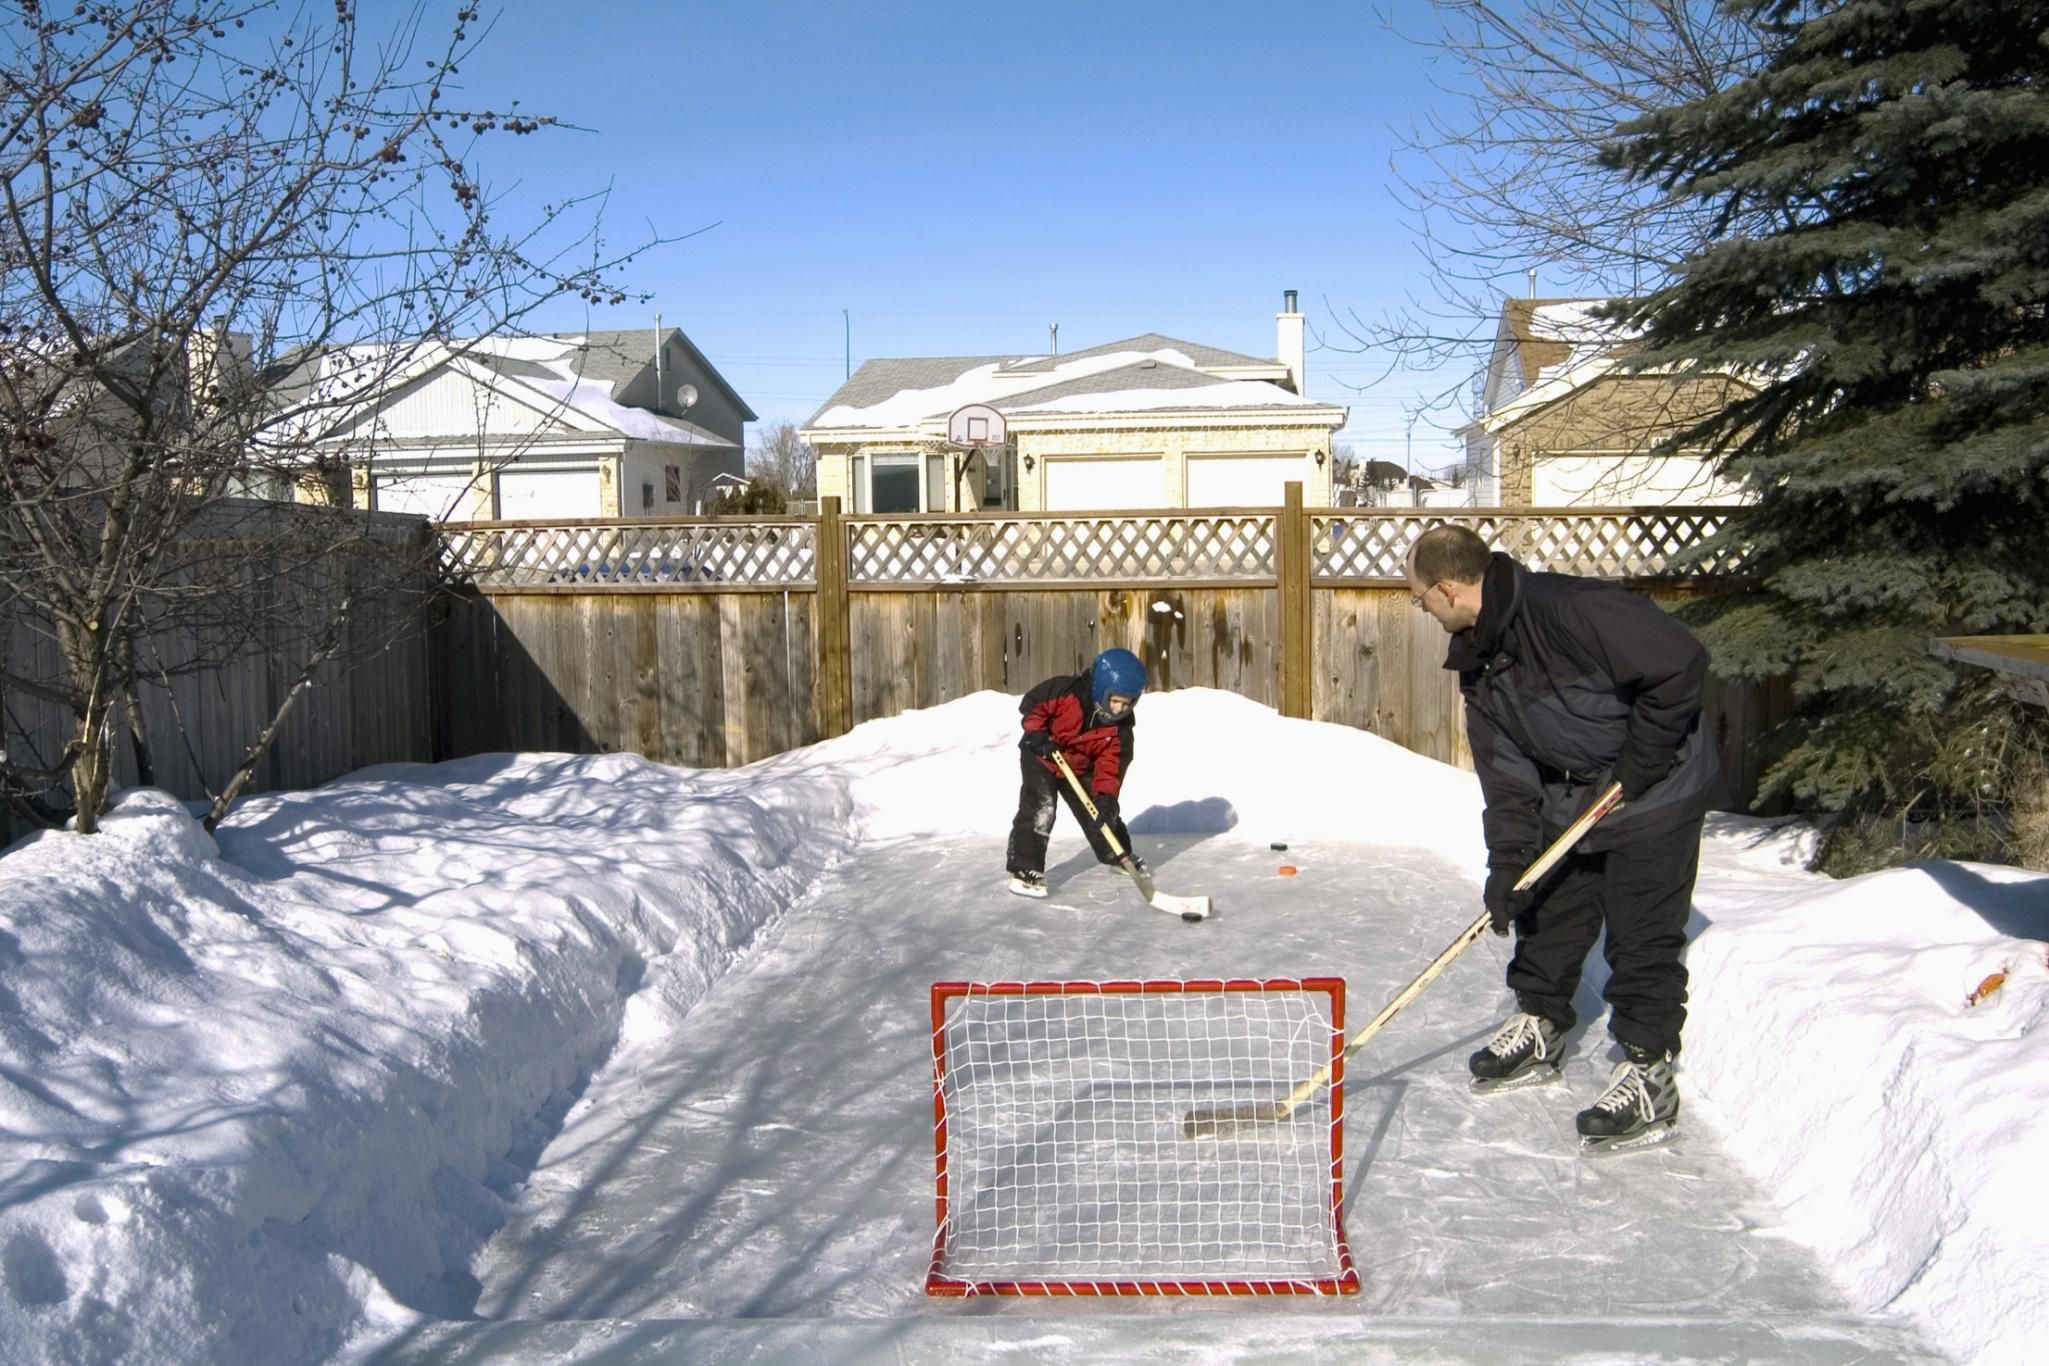 How to Build and Maintain a Backyard Ice Skating Rink